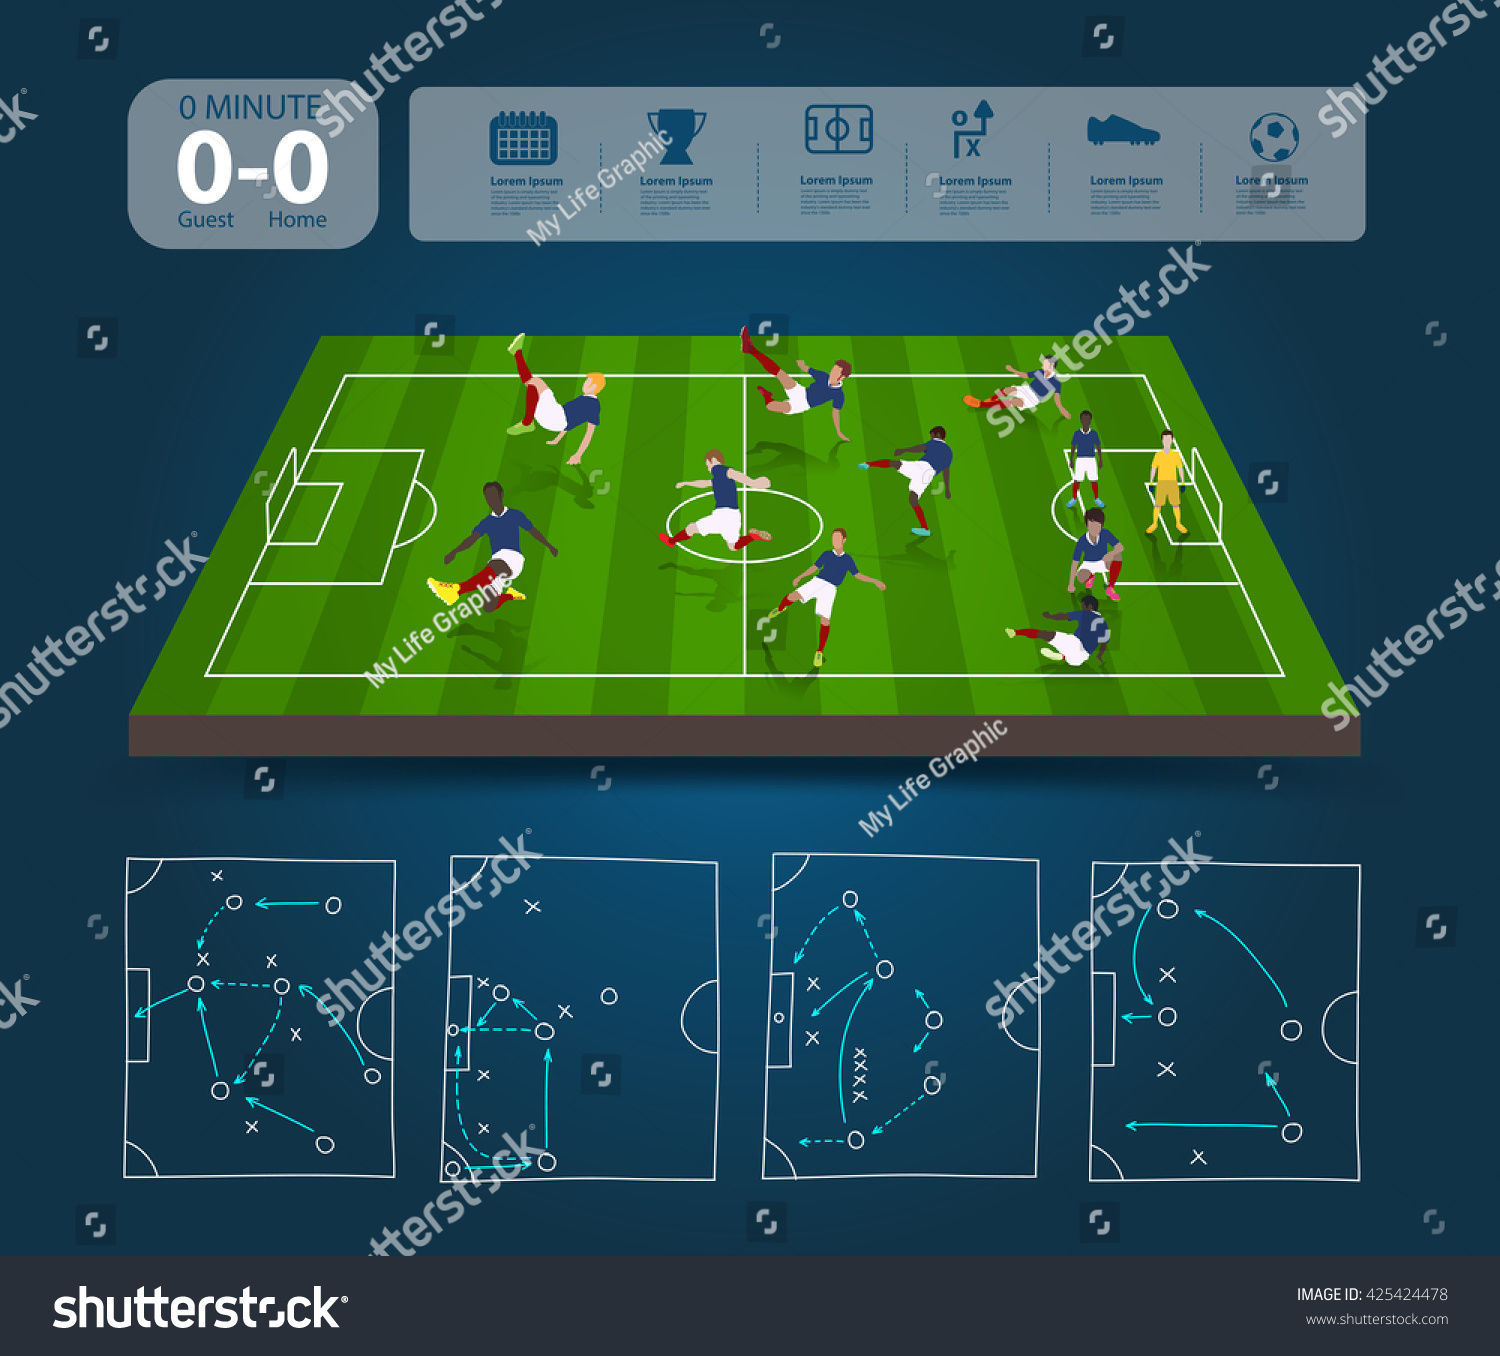 Soccer players different positions soccer field stock vector soccer players in different positions with soccer field with team formation creative drawing strategy plan pooptronica Choice Image